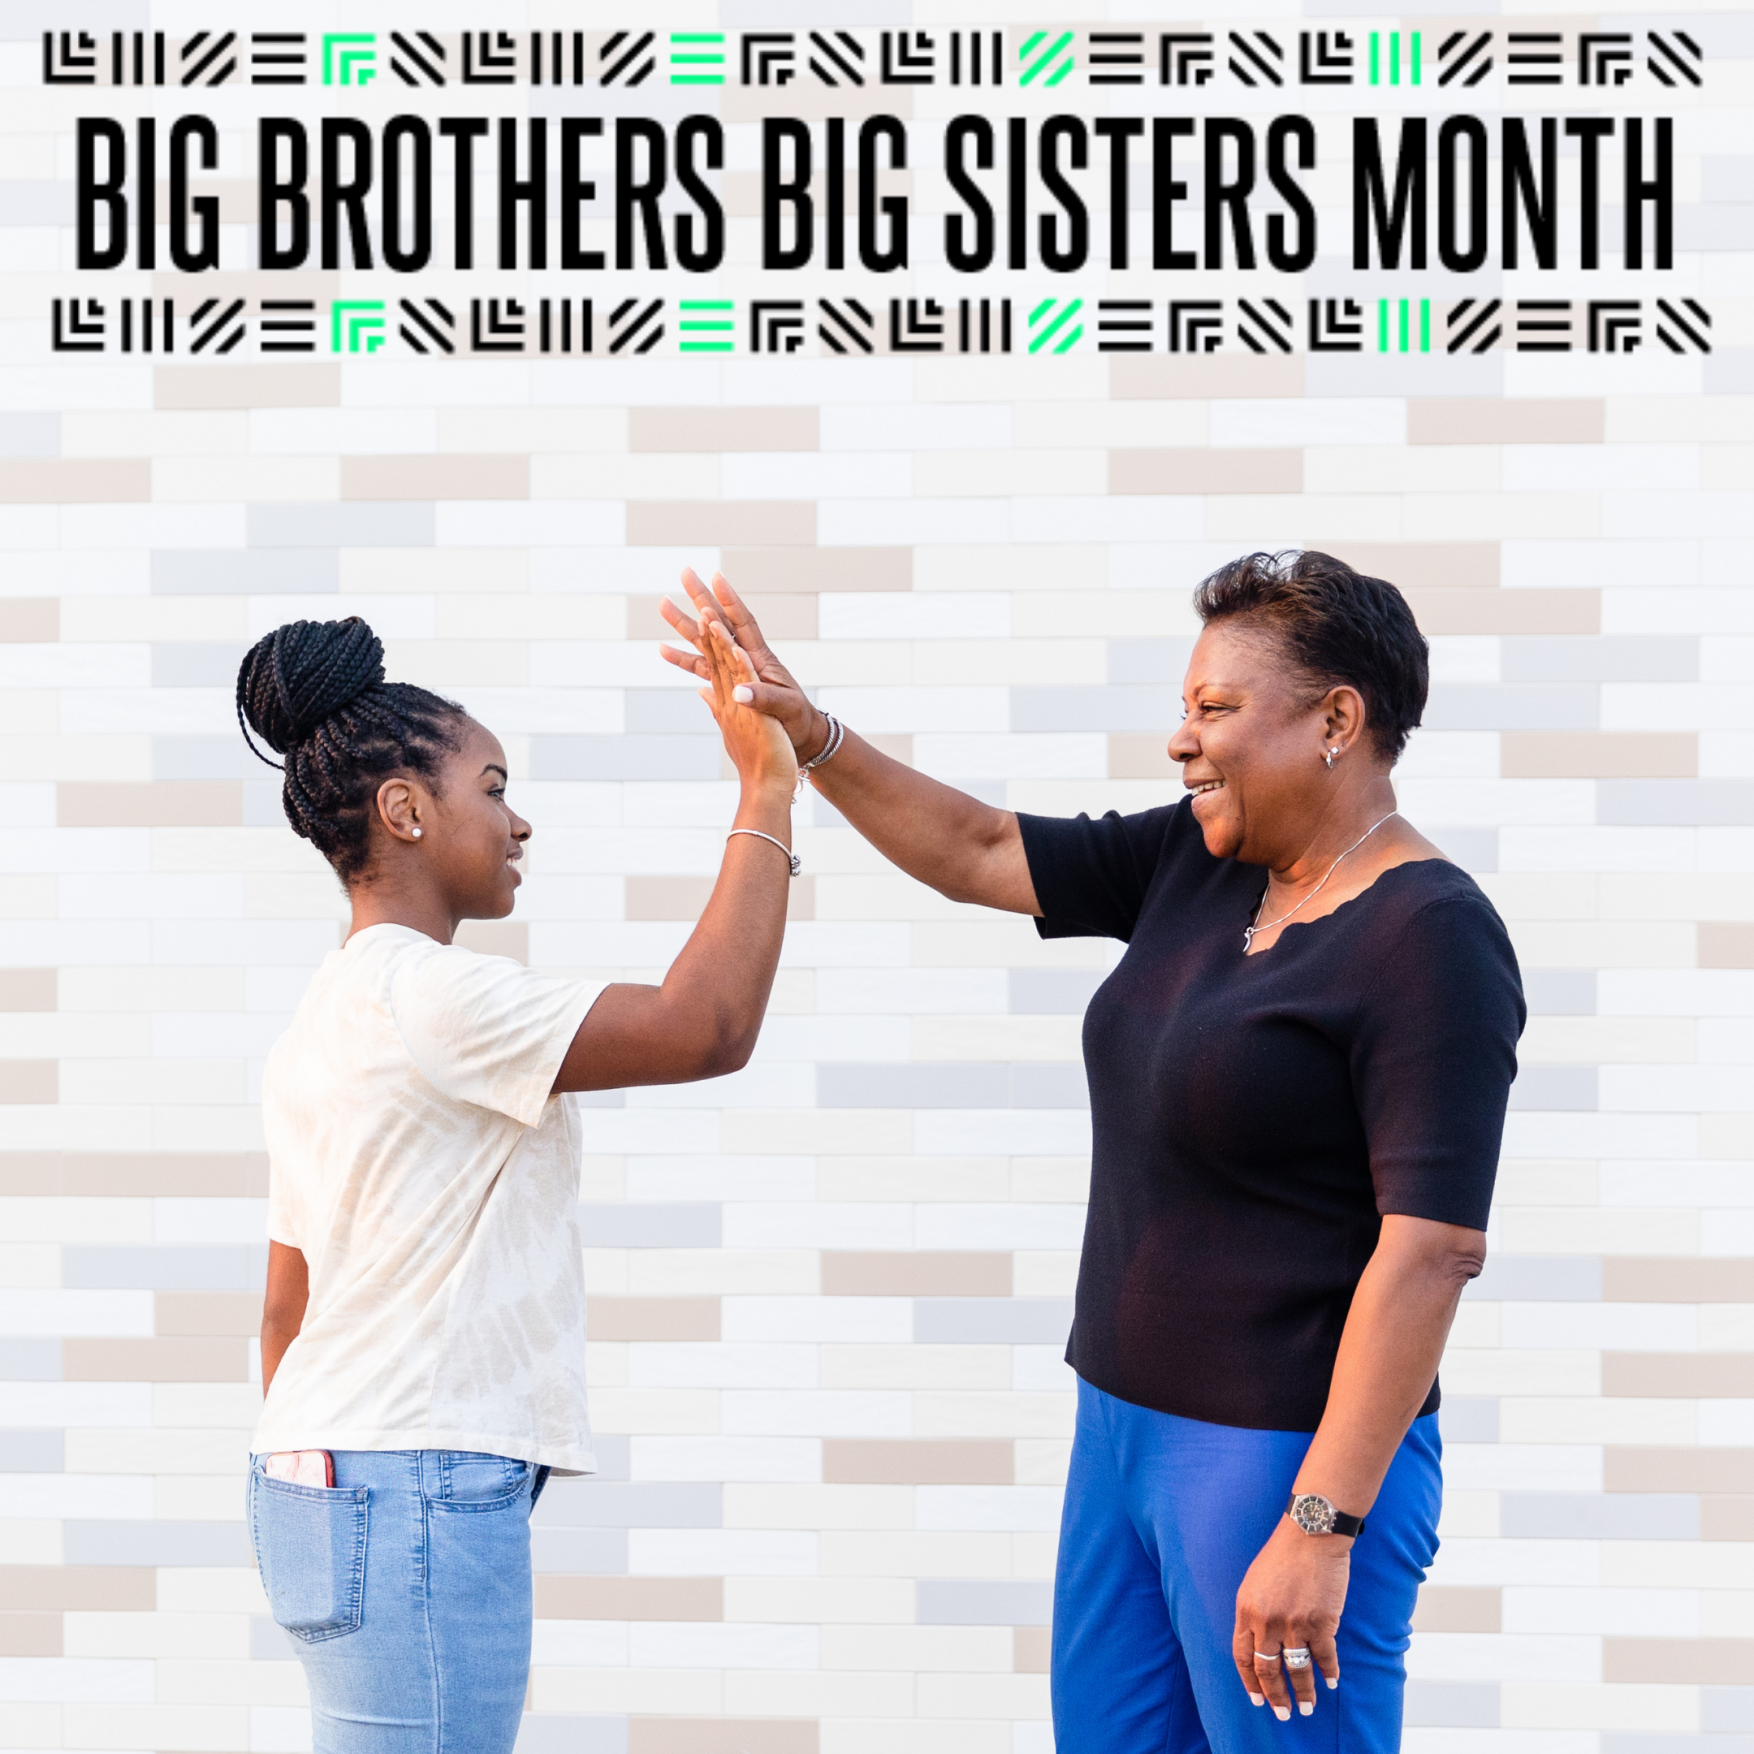 September is Big Brothers Big Sisters Month